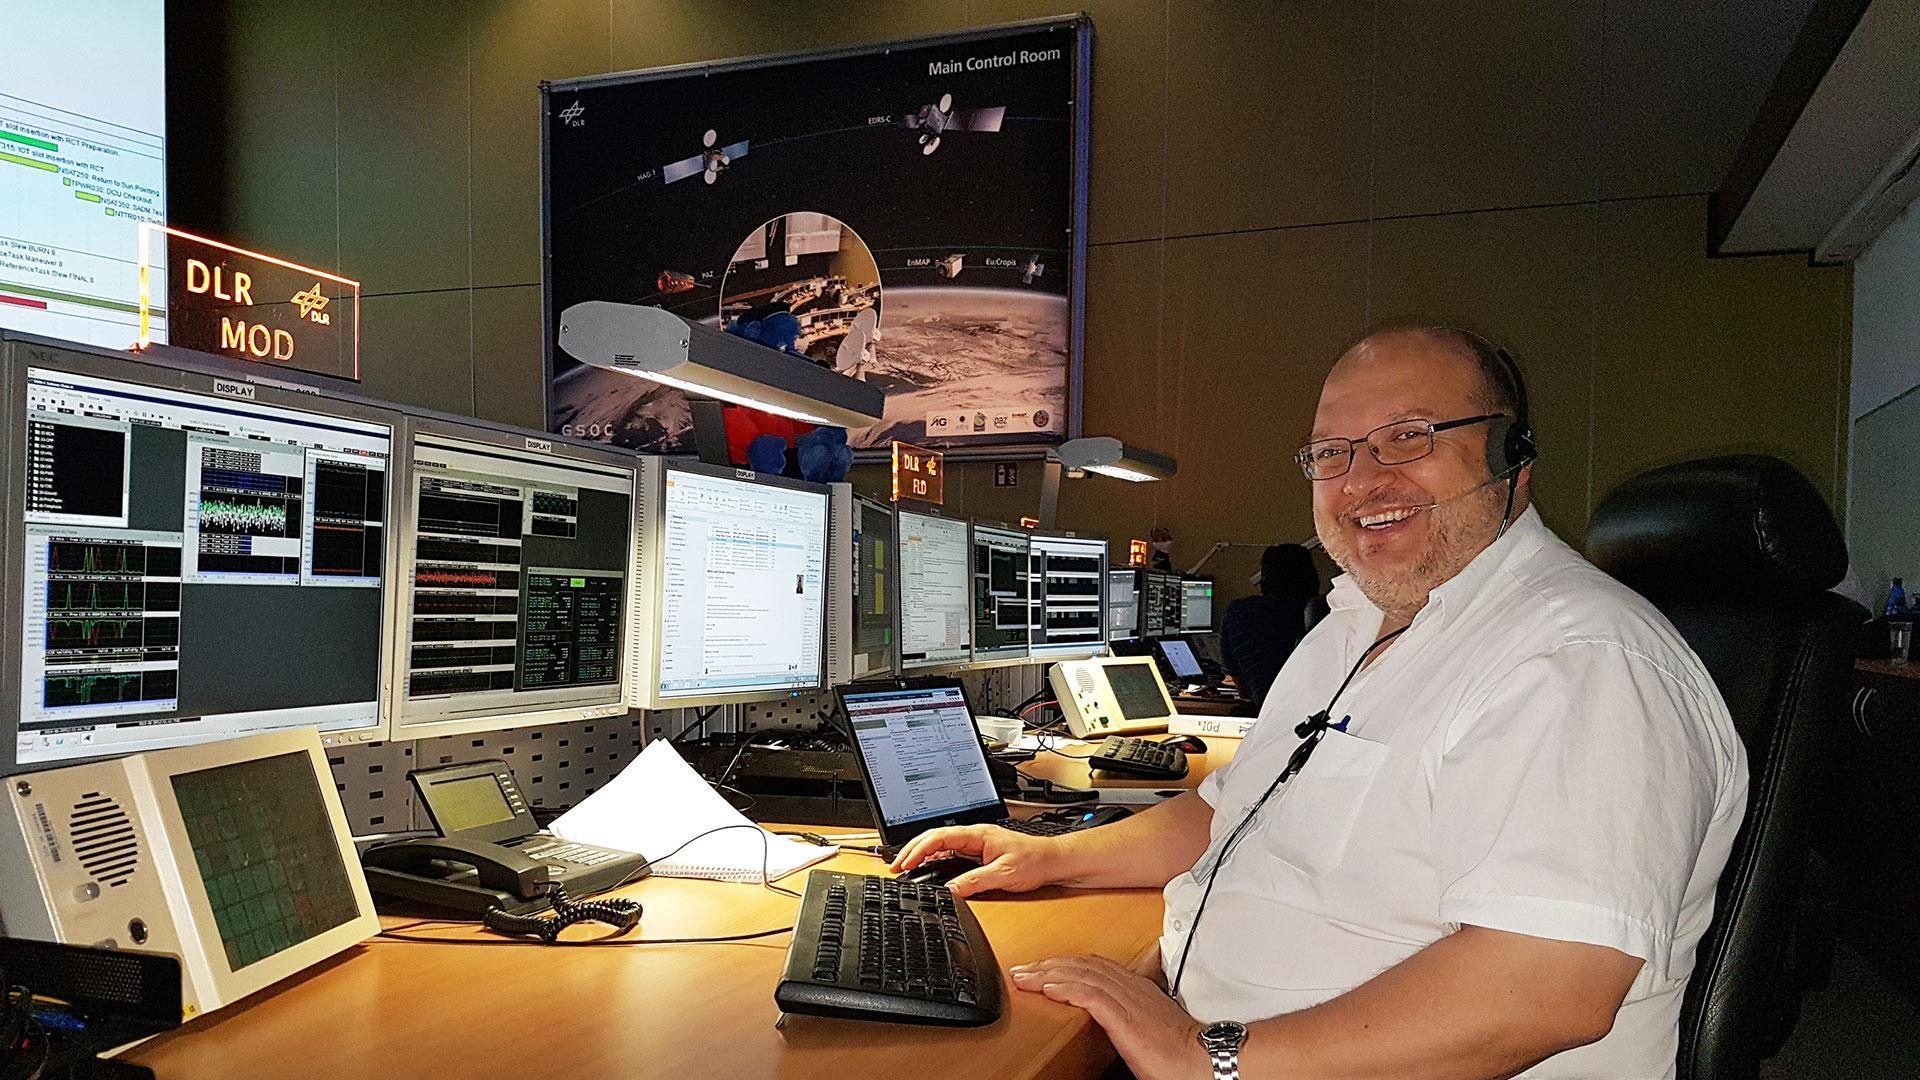 Ralf Faller in the EDRS control room